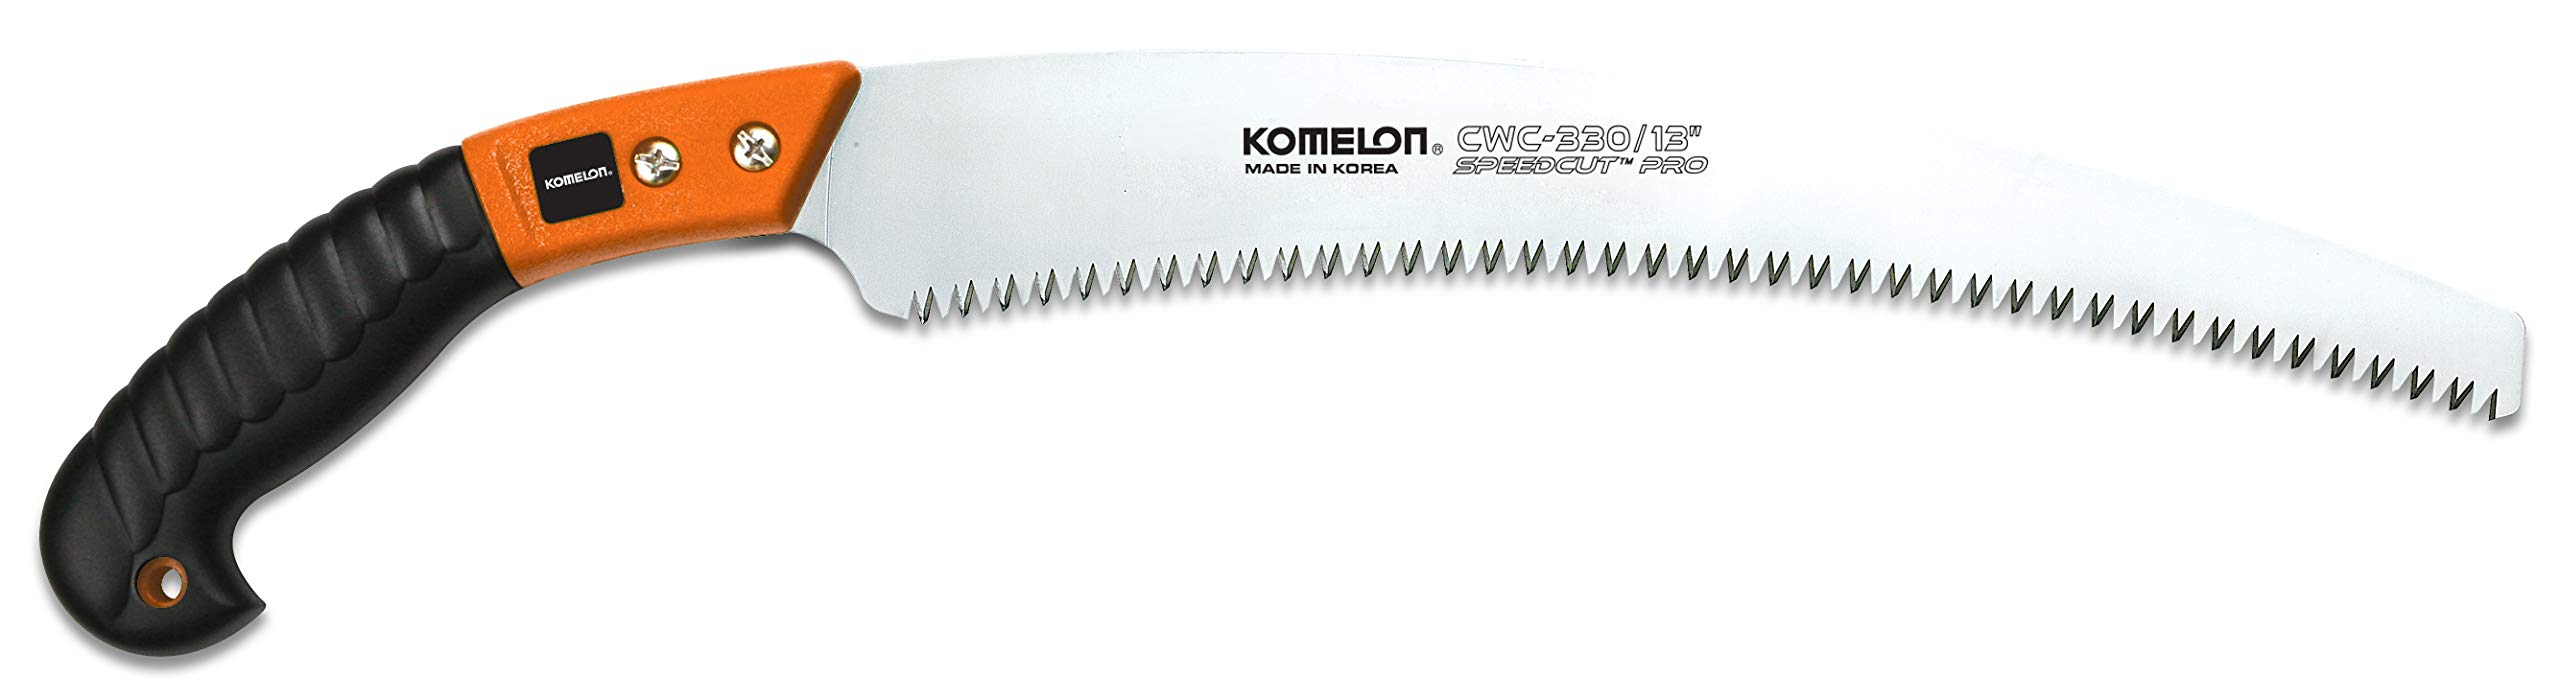 Komelon Speed Cut Pro Curved Pruning Saw, 13-Inch by Komelon (Image #1)